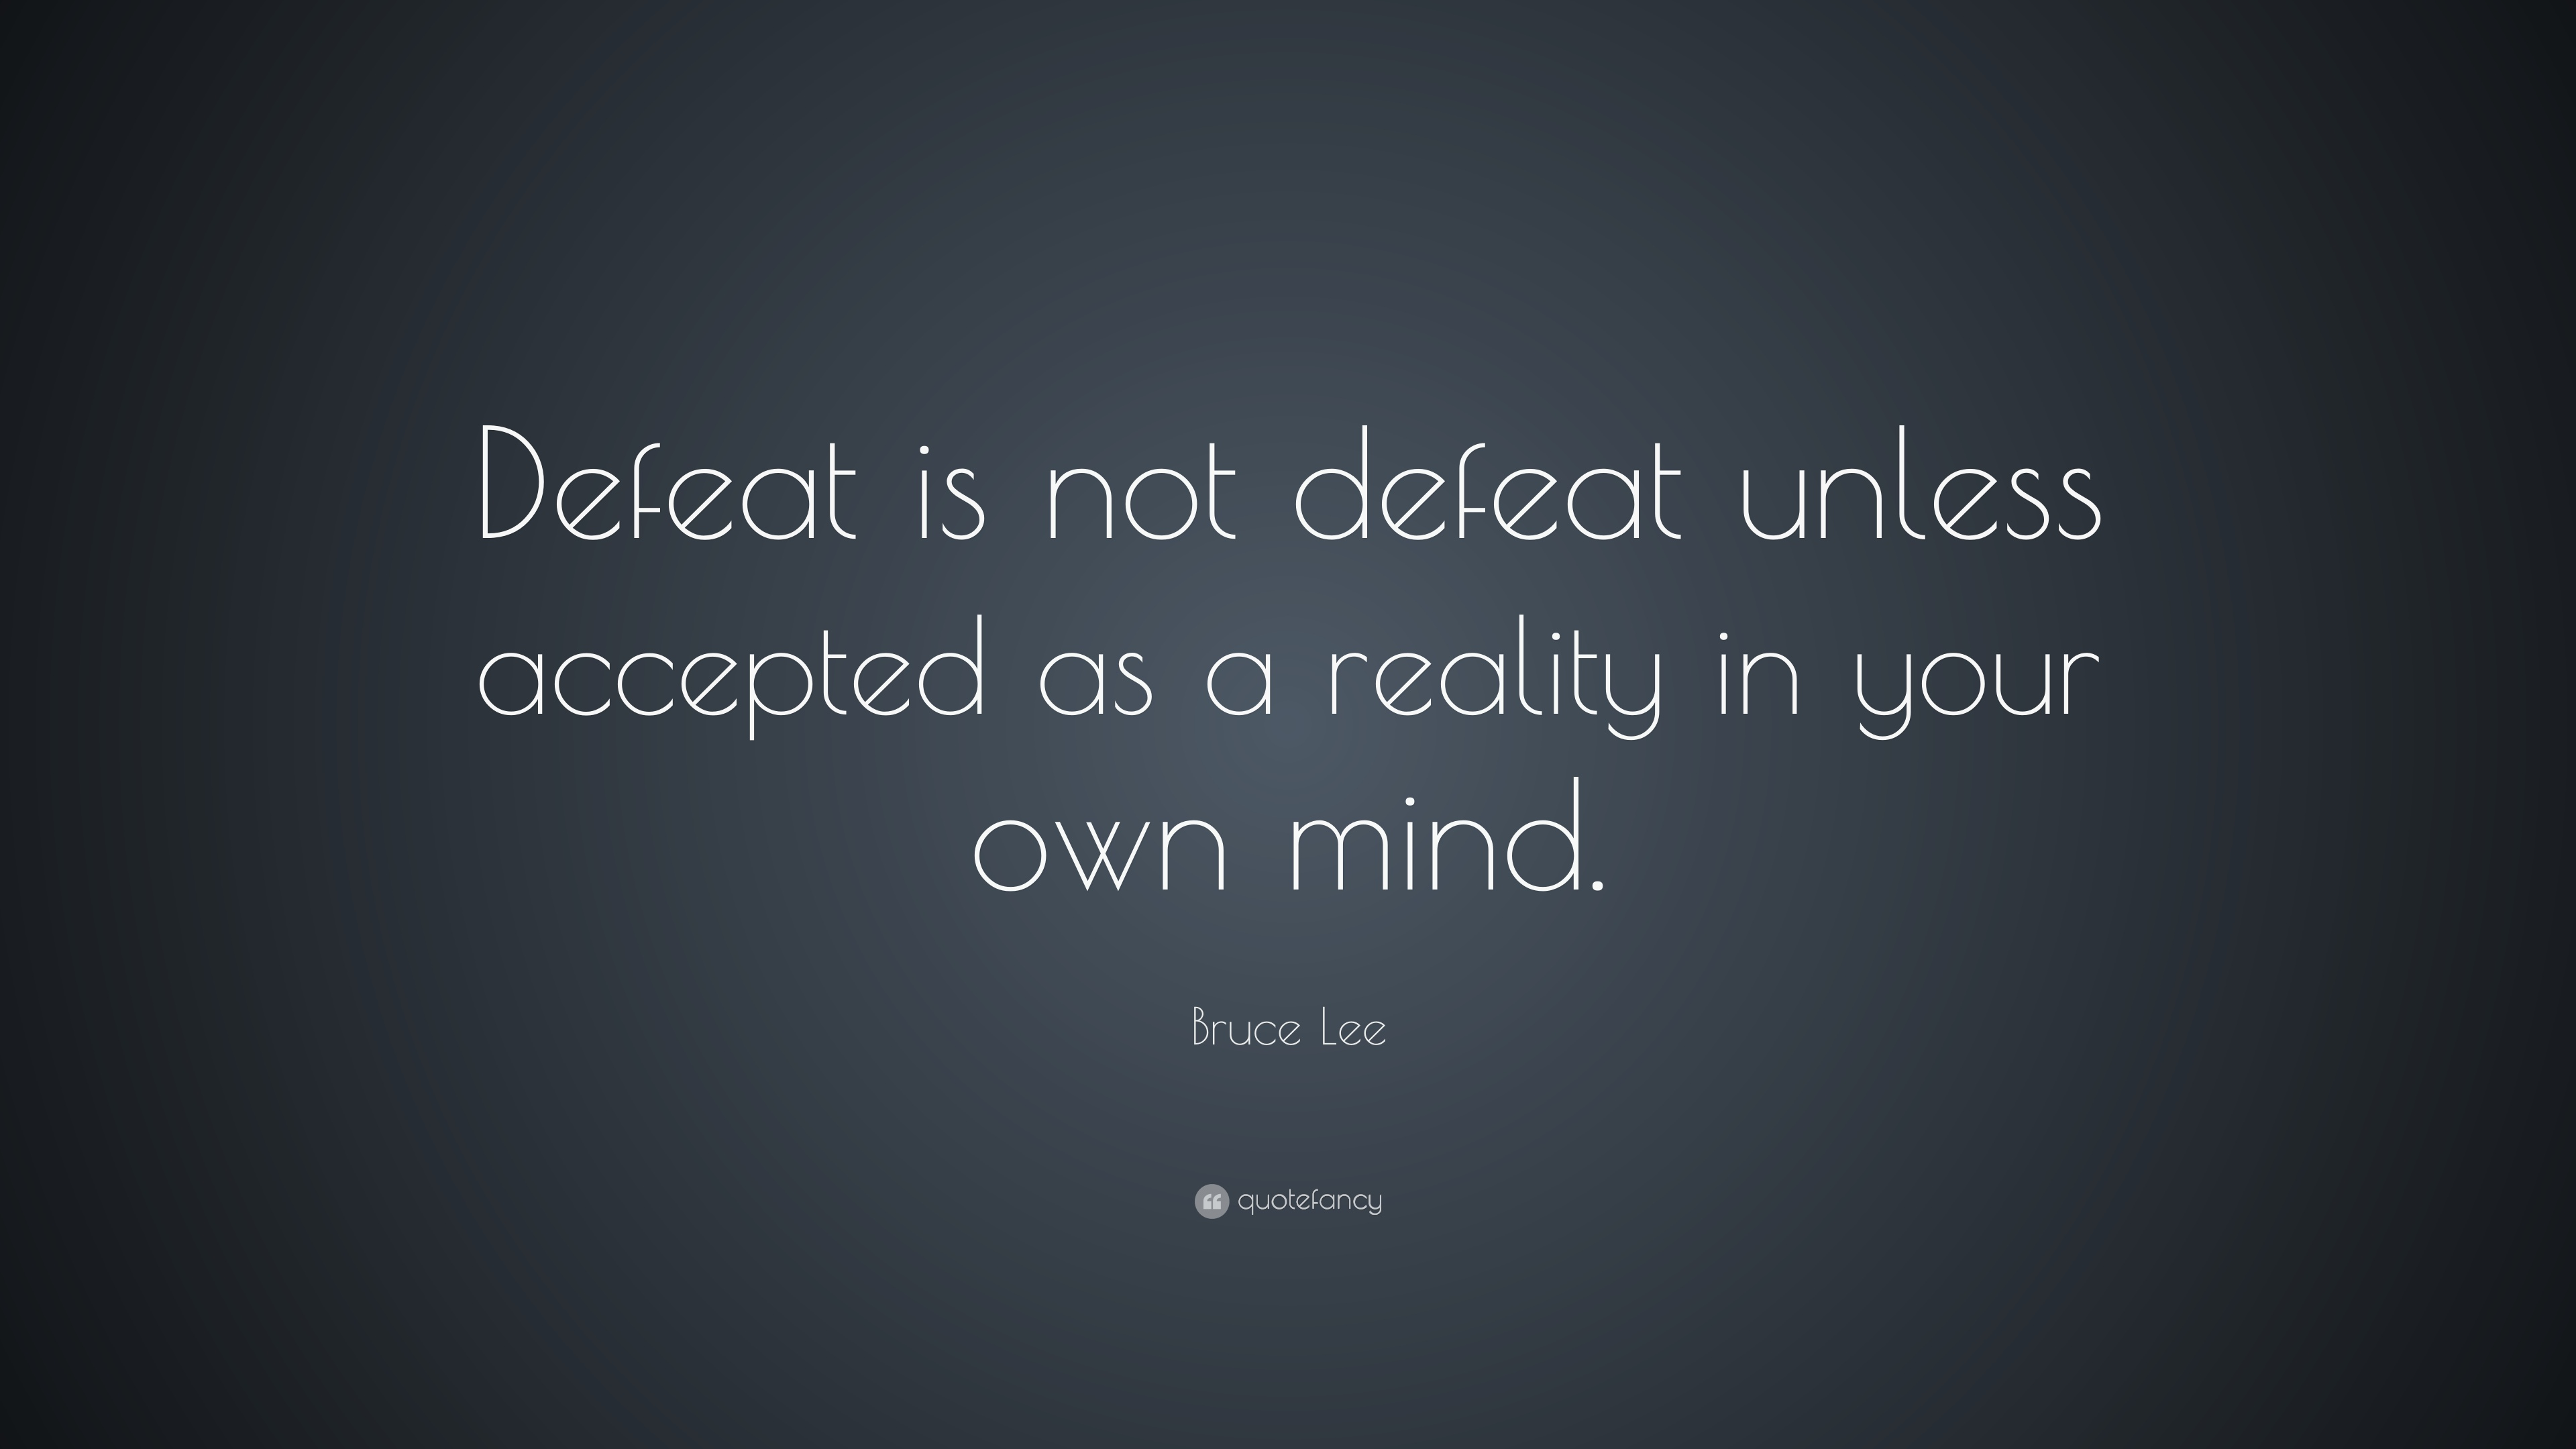 Bruce Lee Defeat Is Not Quote